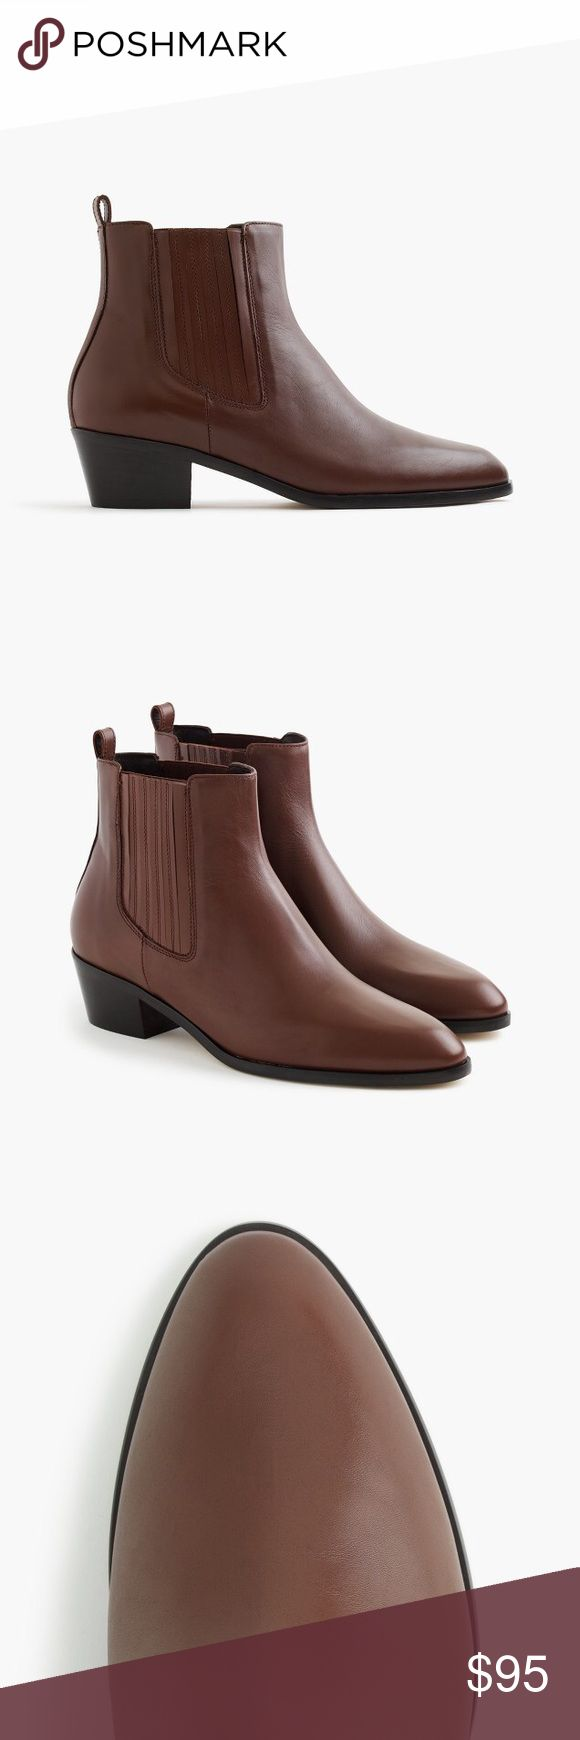 "J Crew Chelsea brown leather ankle boots, 8.5 NEW 1 7/8"" heel. 4.6/5 rating on J Crew website. LOVE THESE BOOTS but I bought the wrong size as they are a bit too narrow for my wide feet. Brand new in box. Make me an offer! J. Crew Shoes Ankle Boots & Booties"